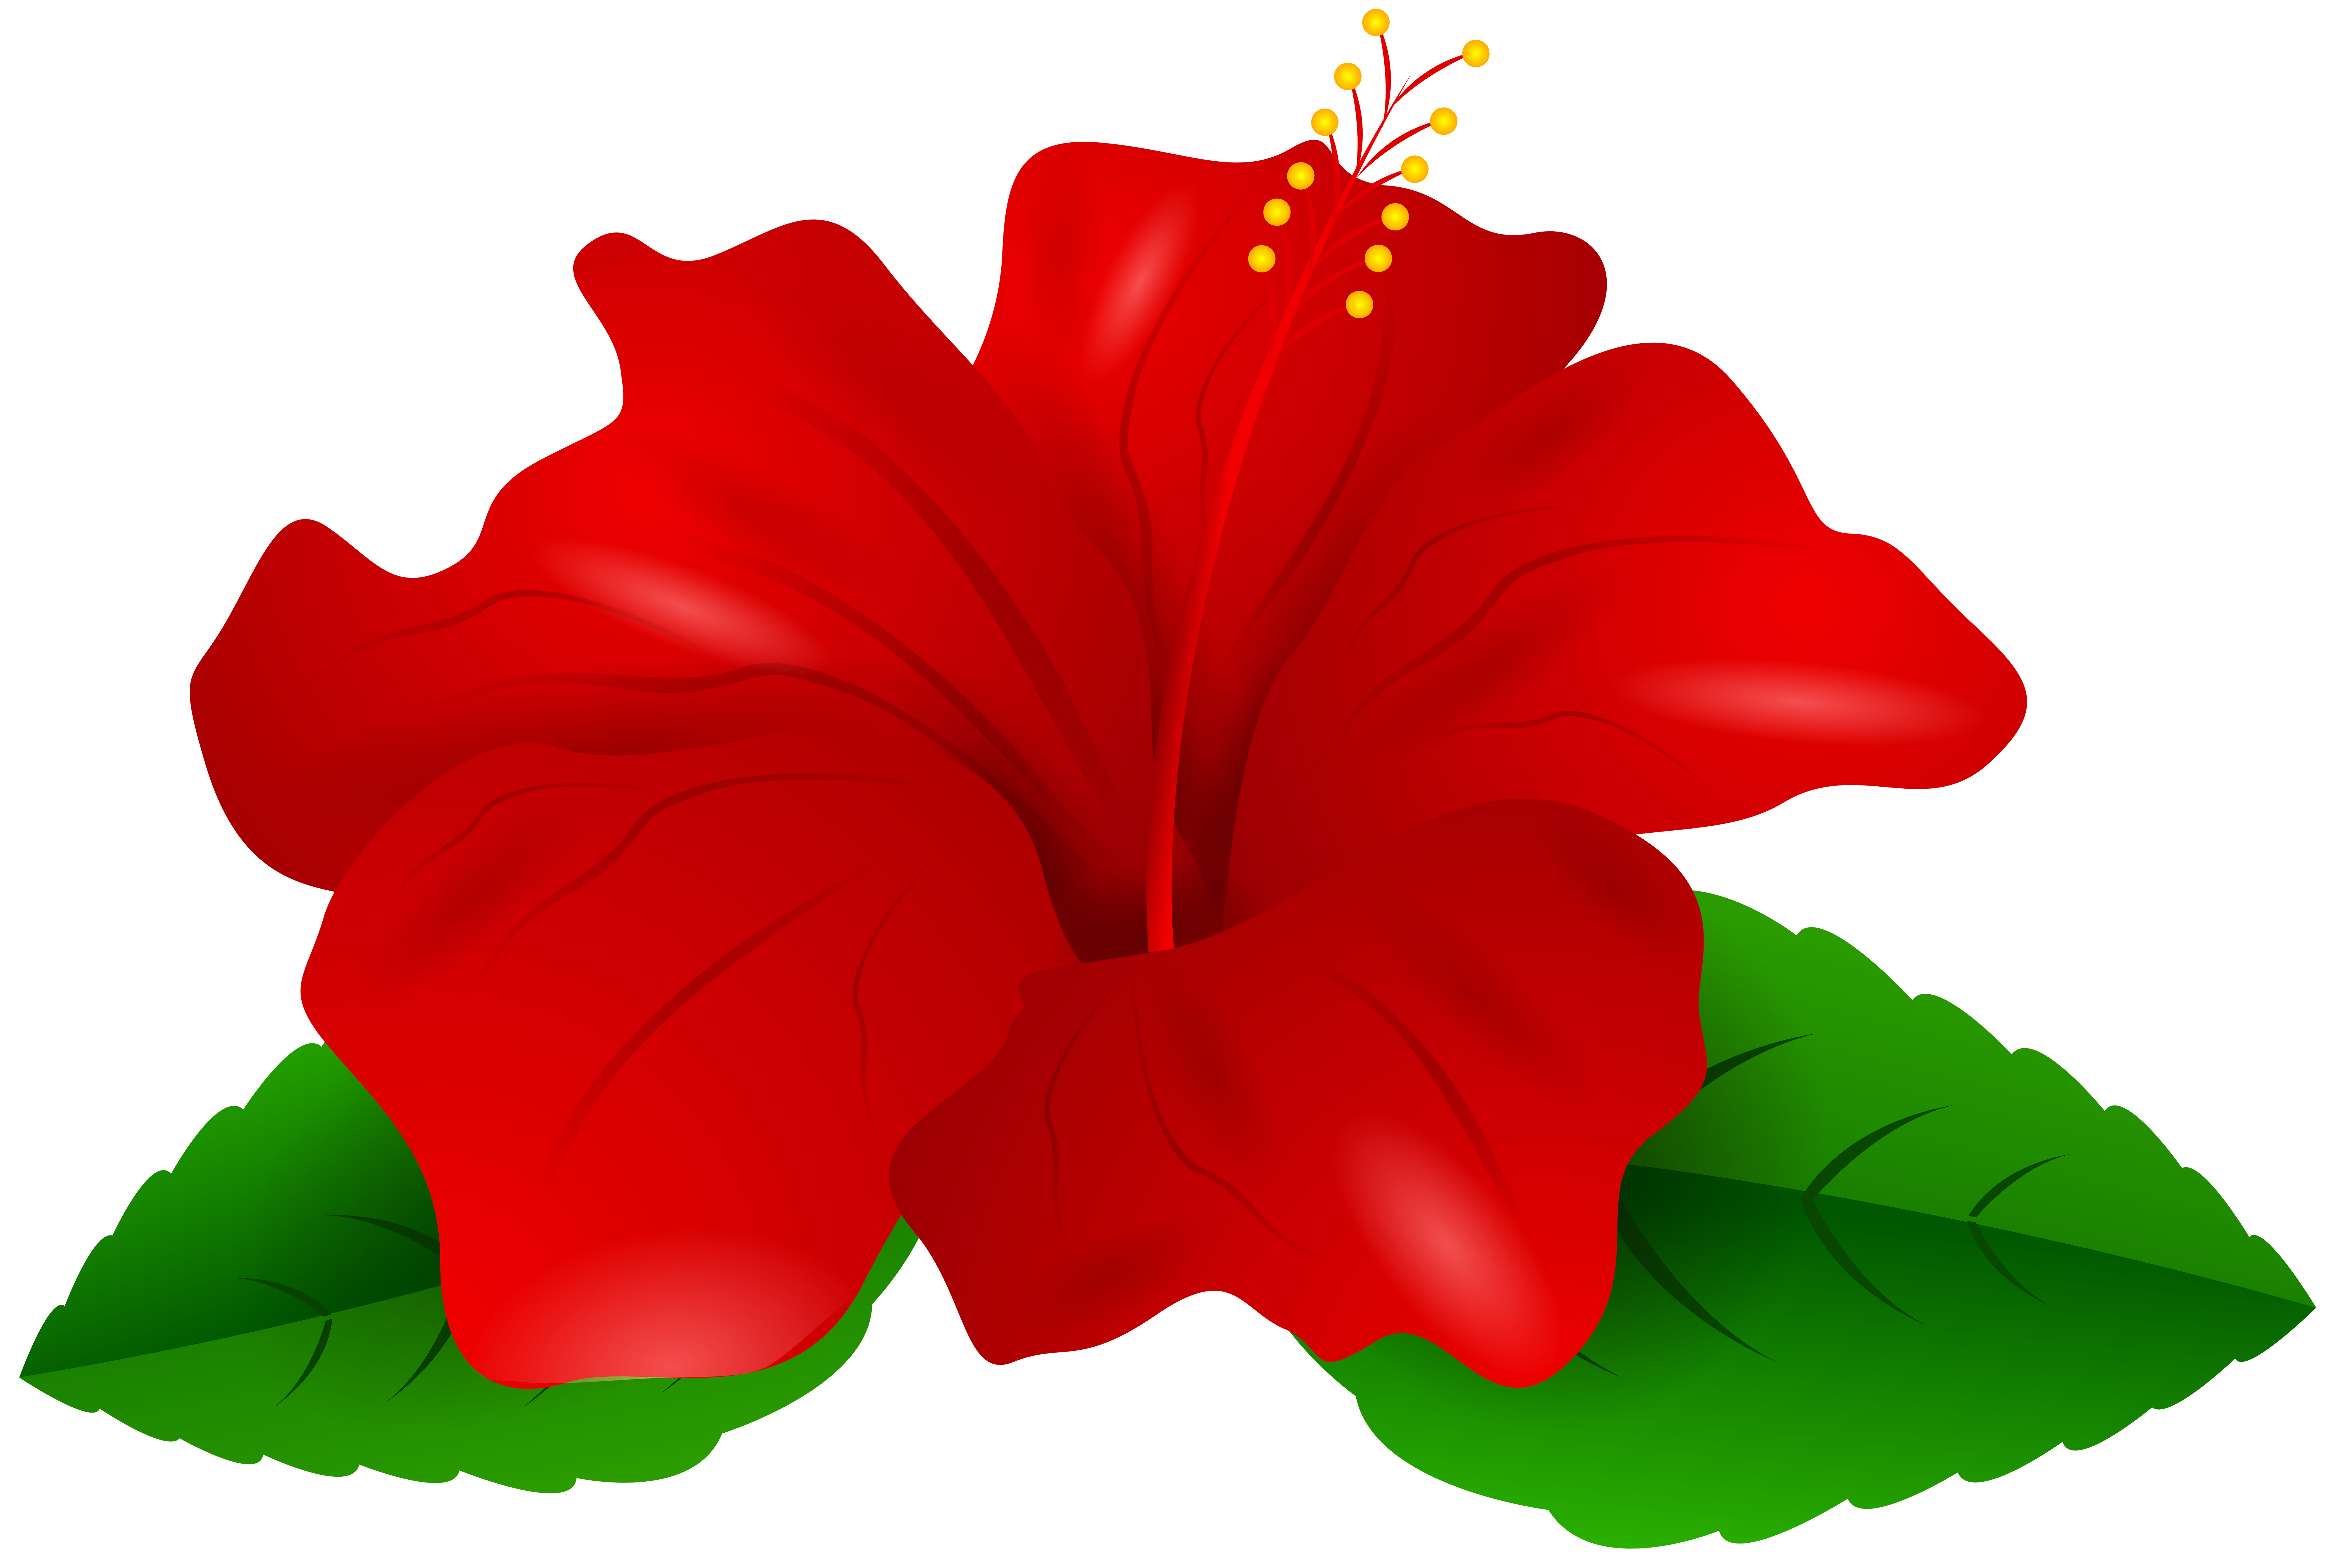 Hibiscus flower png. Red transparent clip art